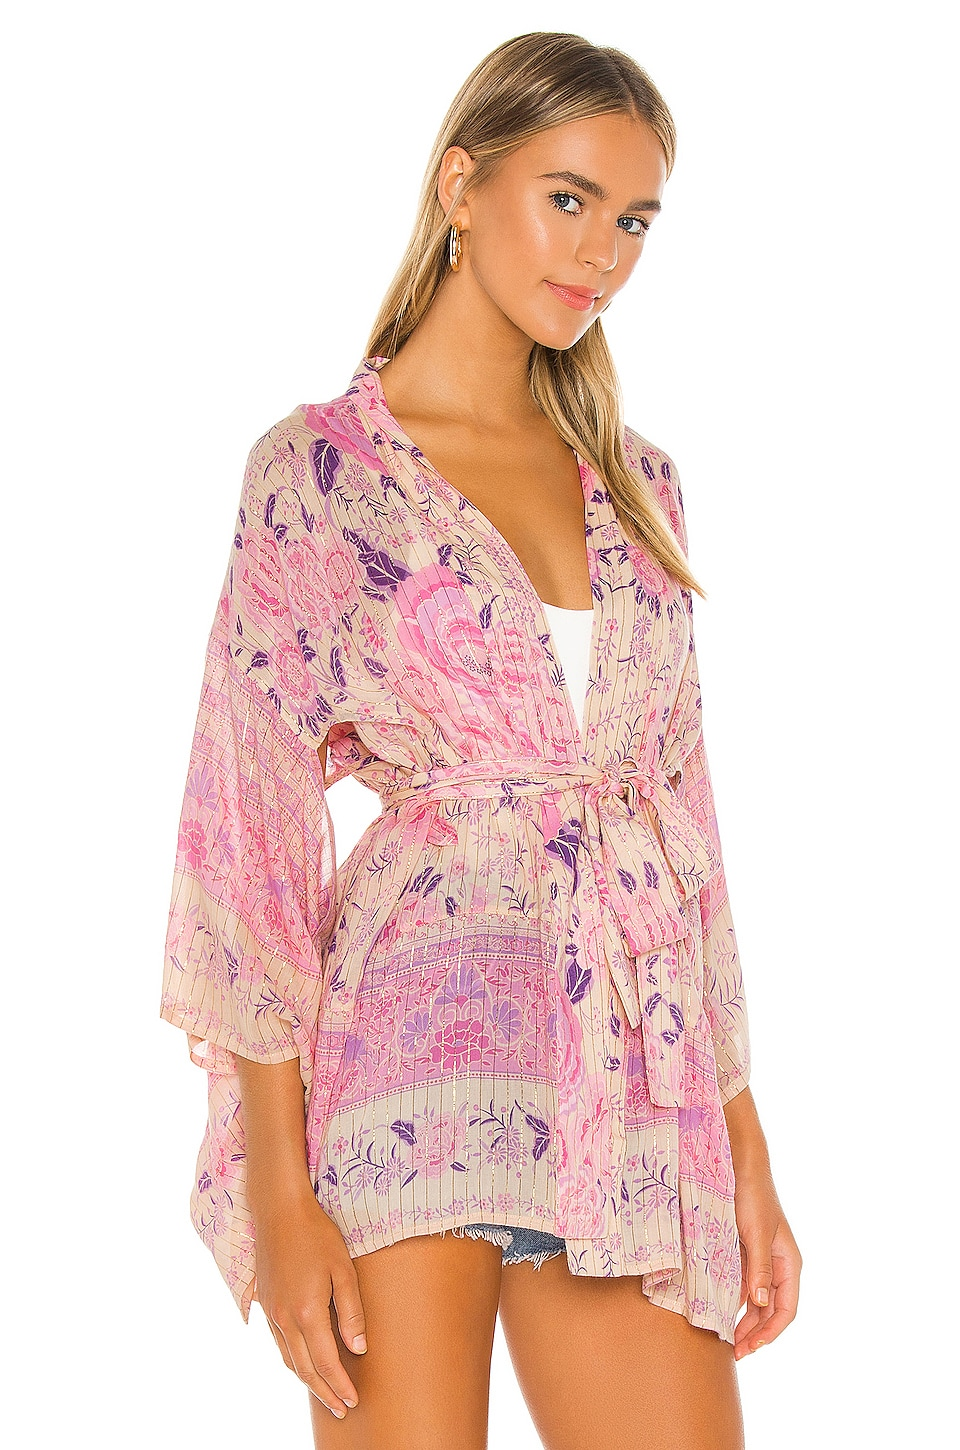 x REVOLVE Mystic Short Robe, view 3, click to view large image.